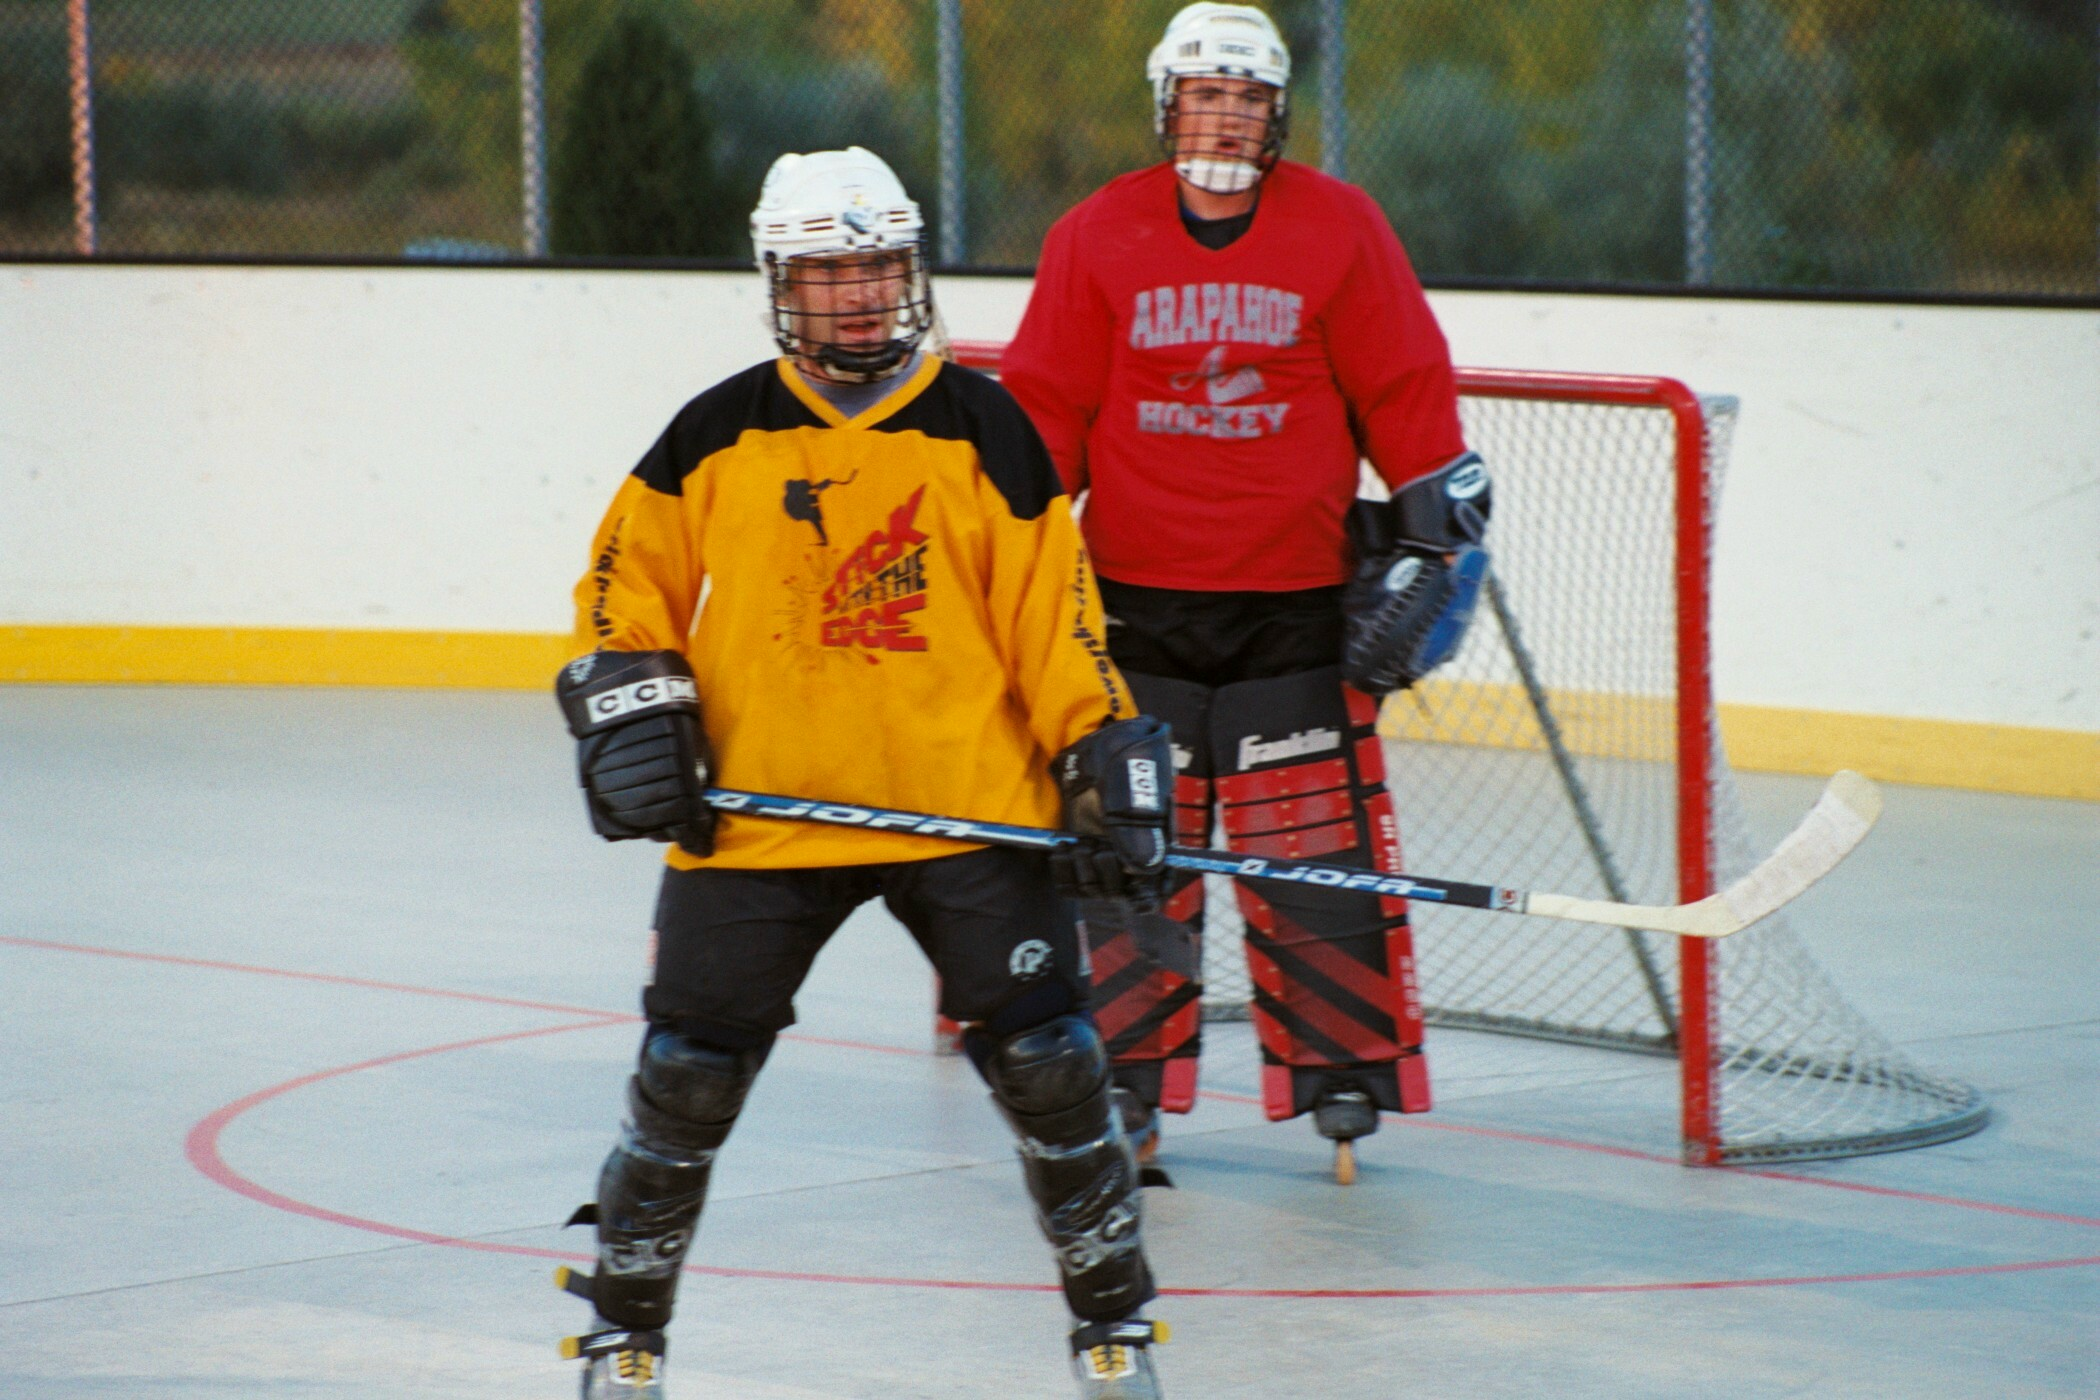 from Deshawn adult roller hockey league